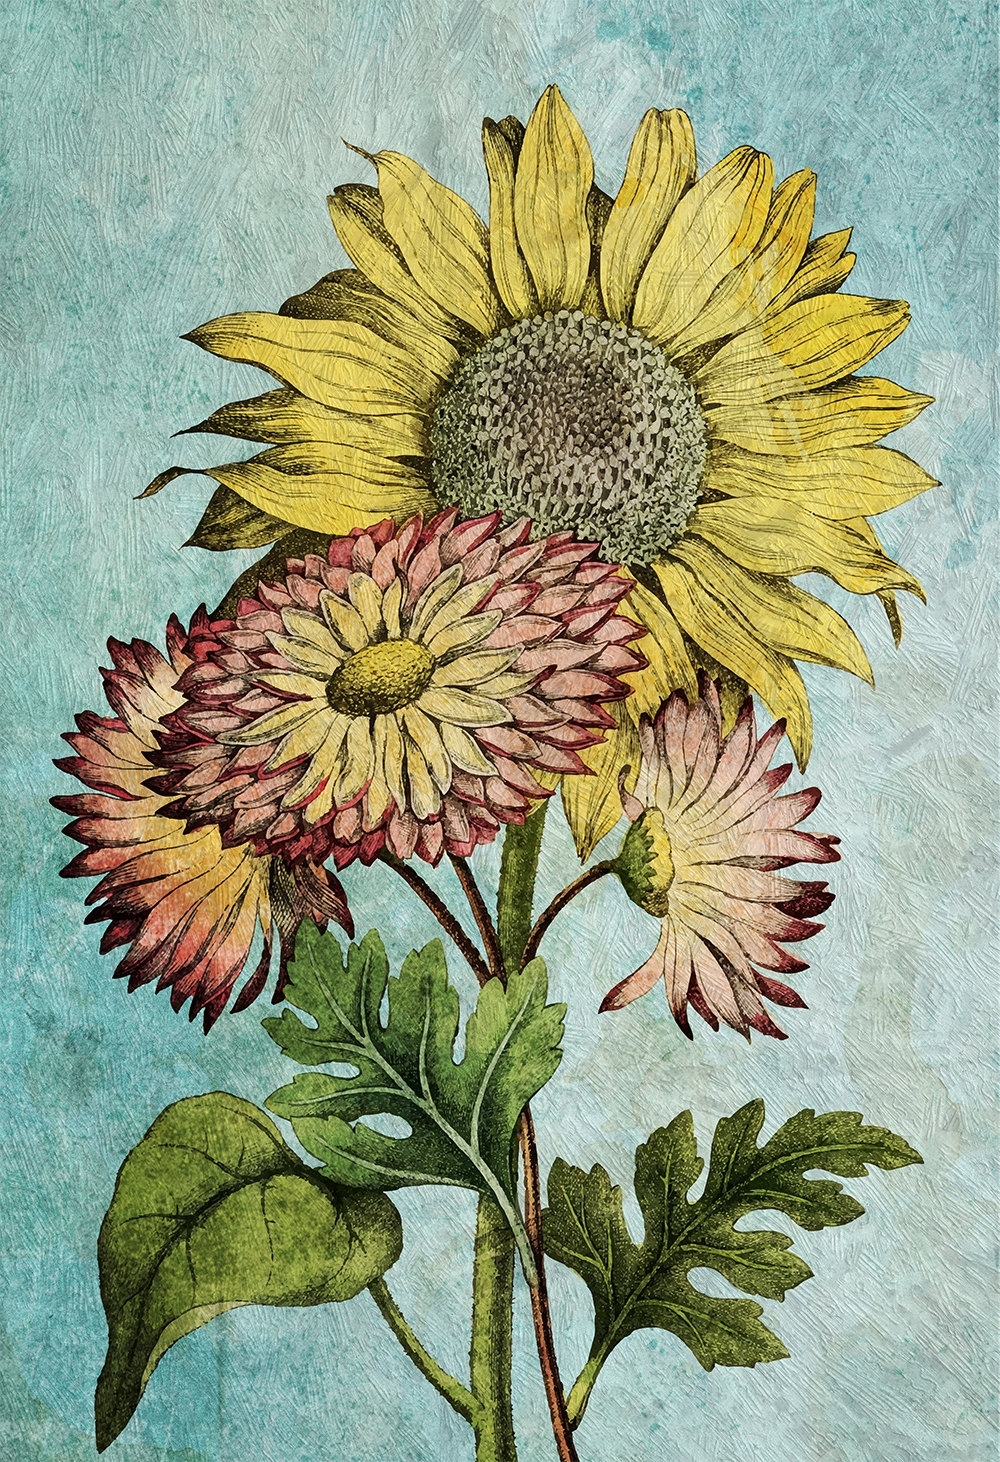 Sunflowers Vintage Home Decor Wall Art Shabby Chic Gift Botanical inside Sunflower Wall Art (Image 18 of 20)